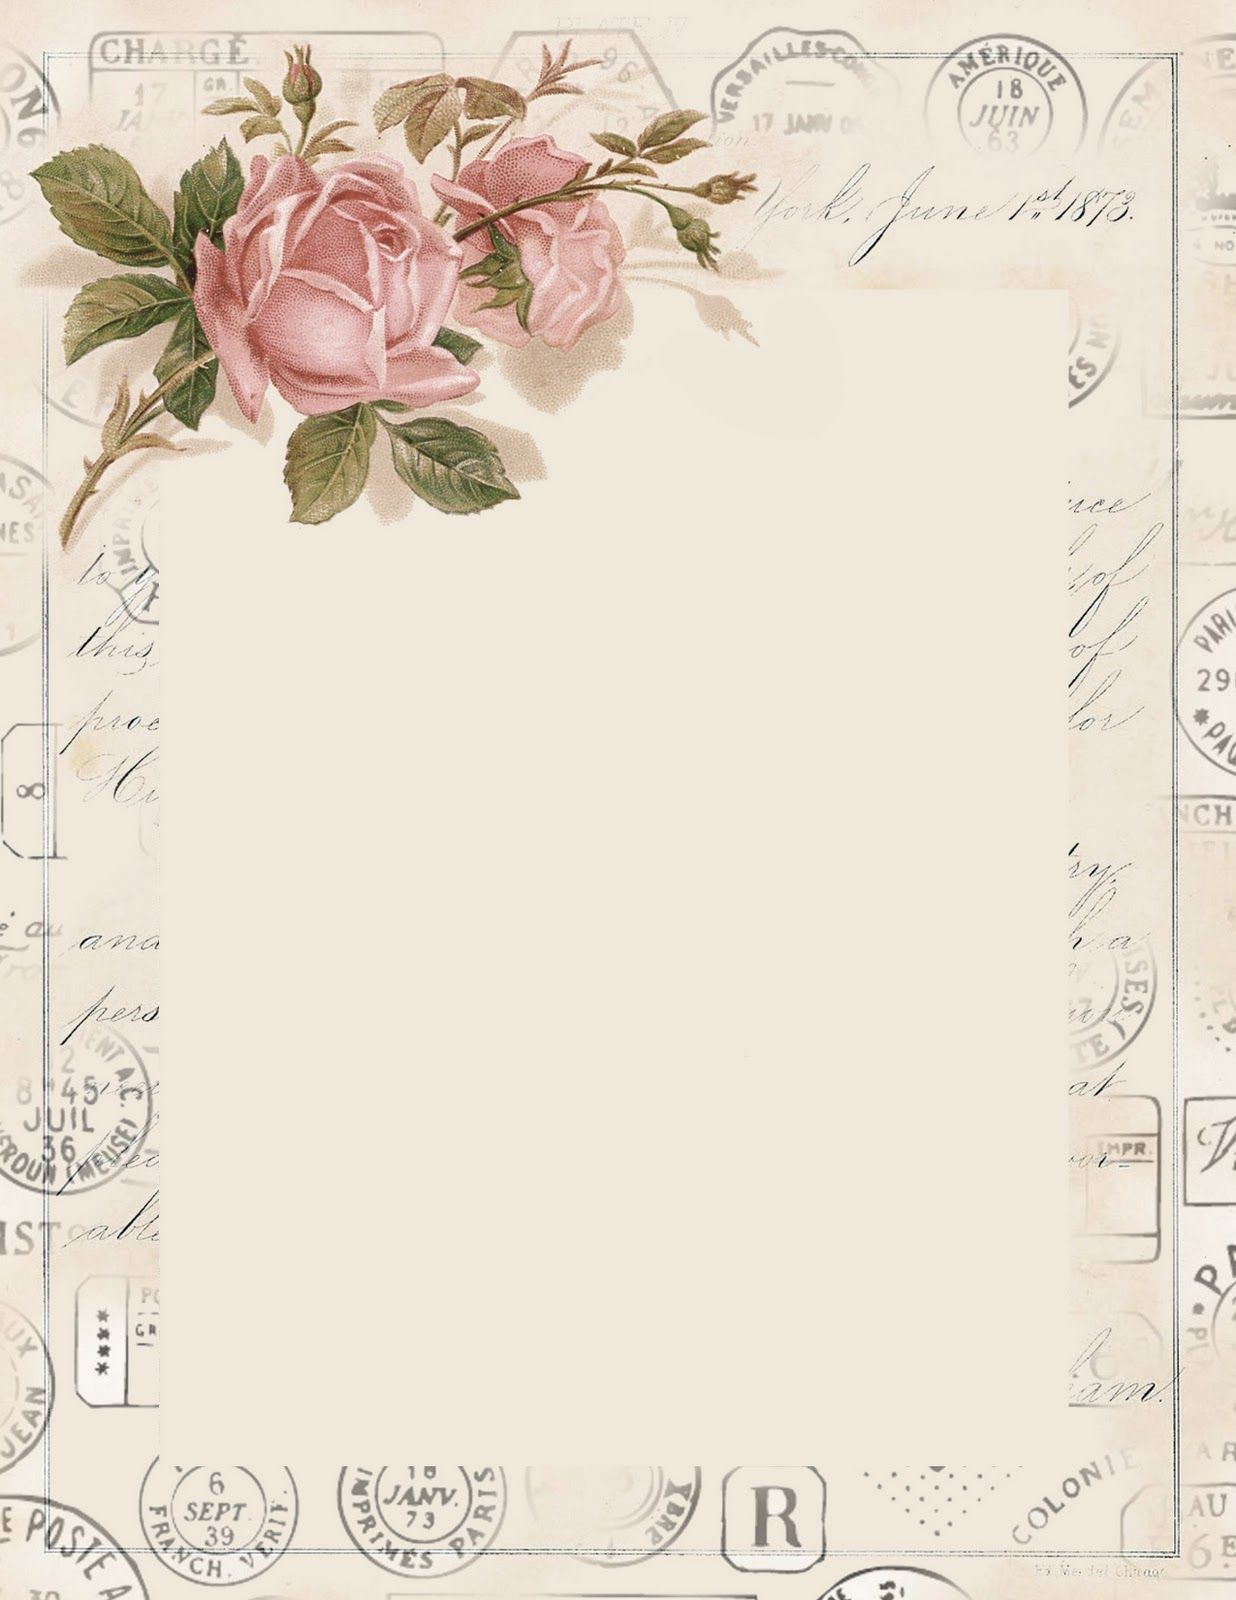 Pretty Letter Template French Postal Marks And Stationary Jpg 1 236 X 600 Pixels